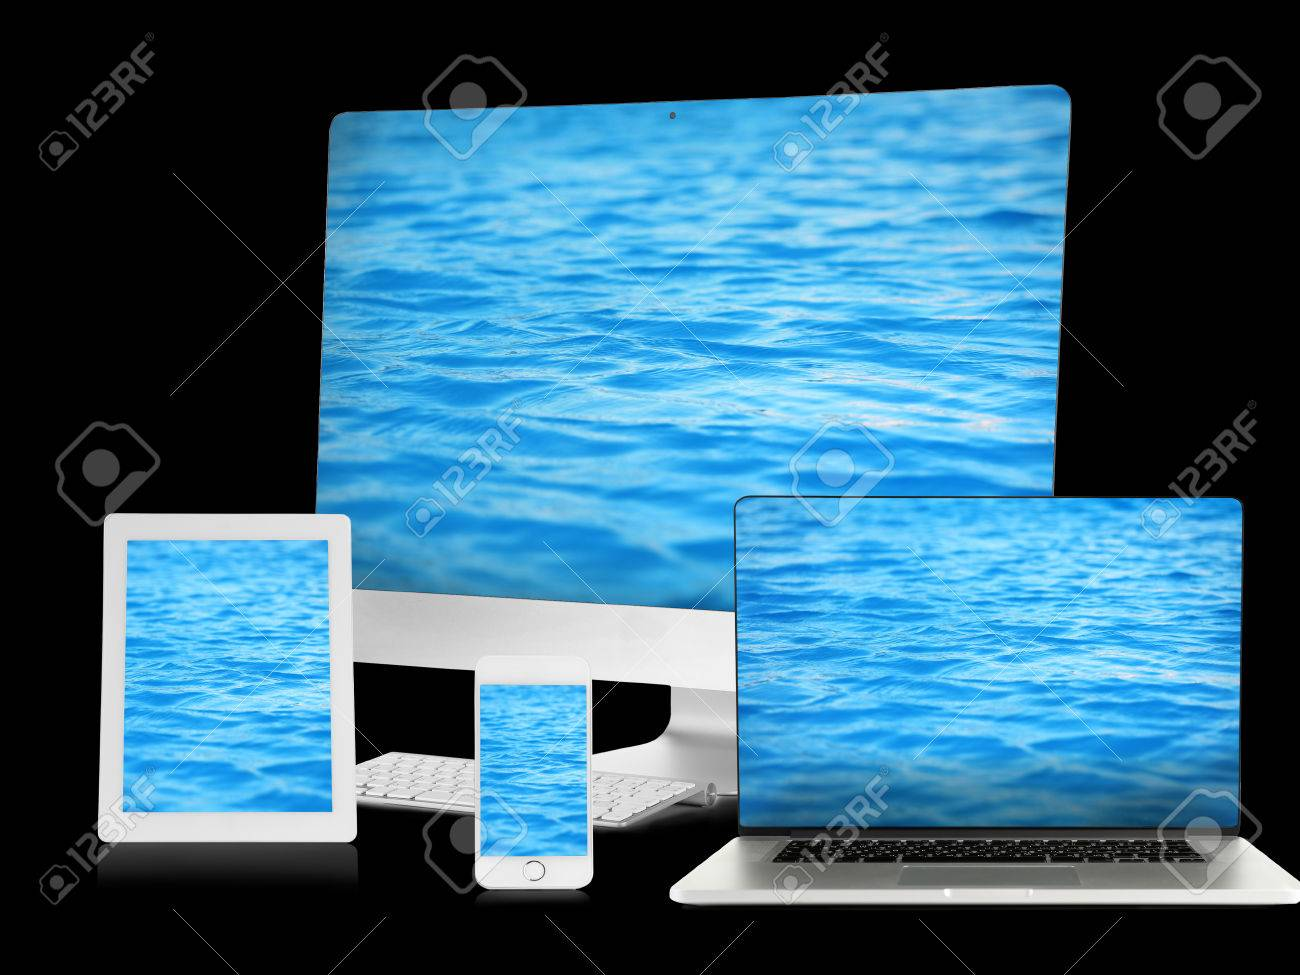 Monitor, laptop, tablet and phone with water wallpaper on screens in collage isolated on